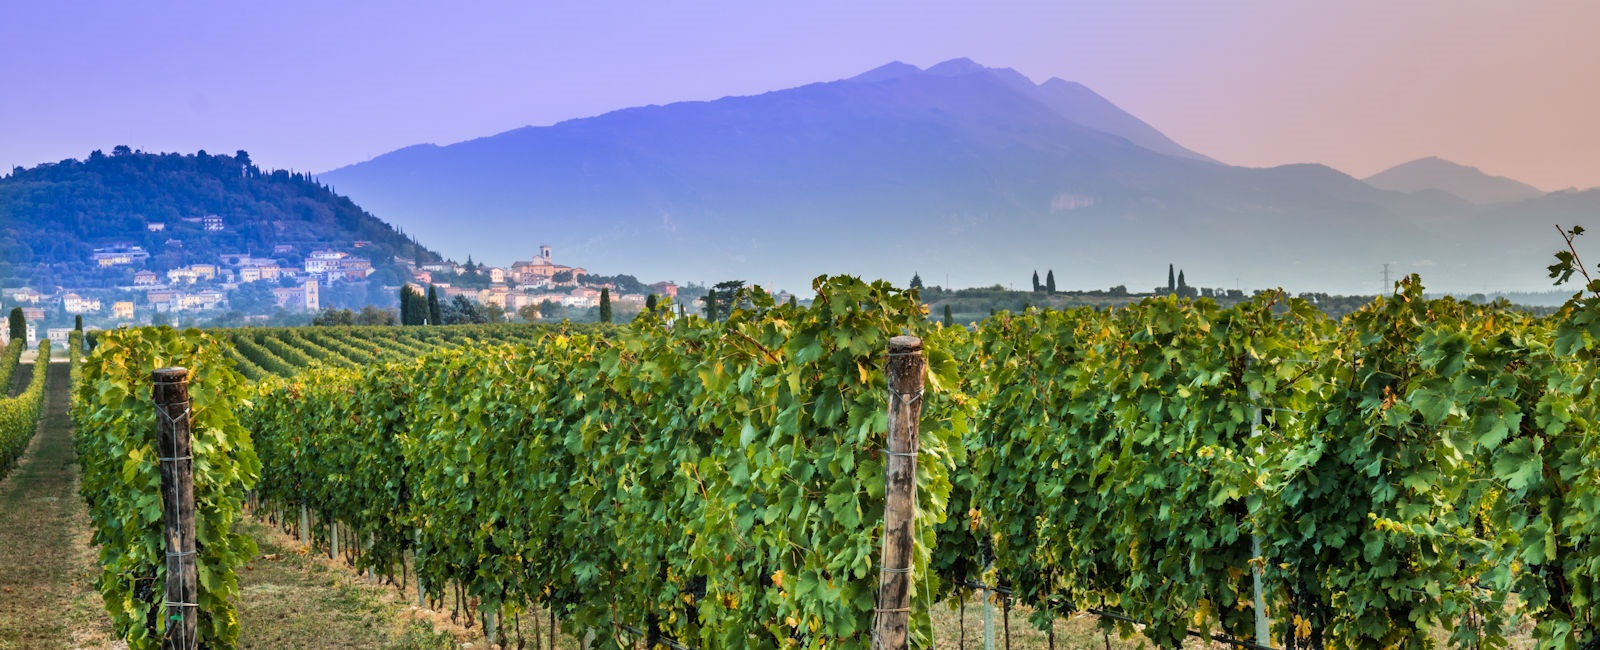 bardolino vineyards, lake garda